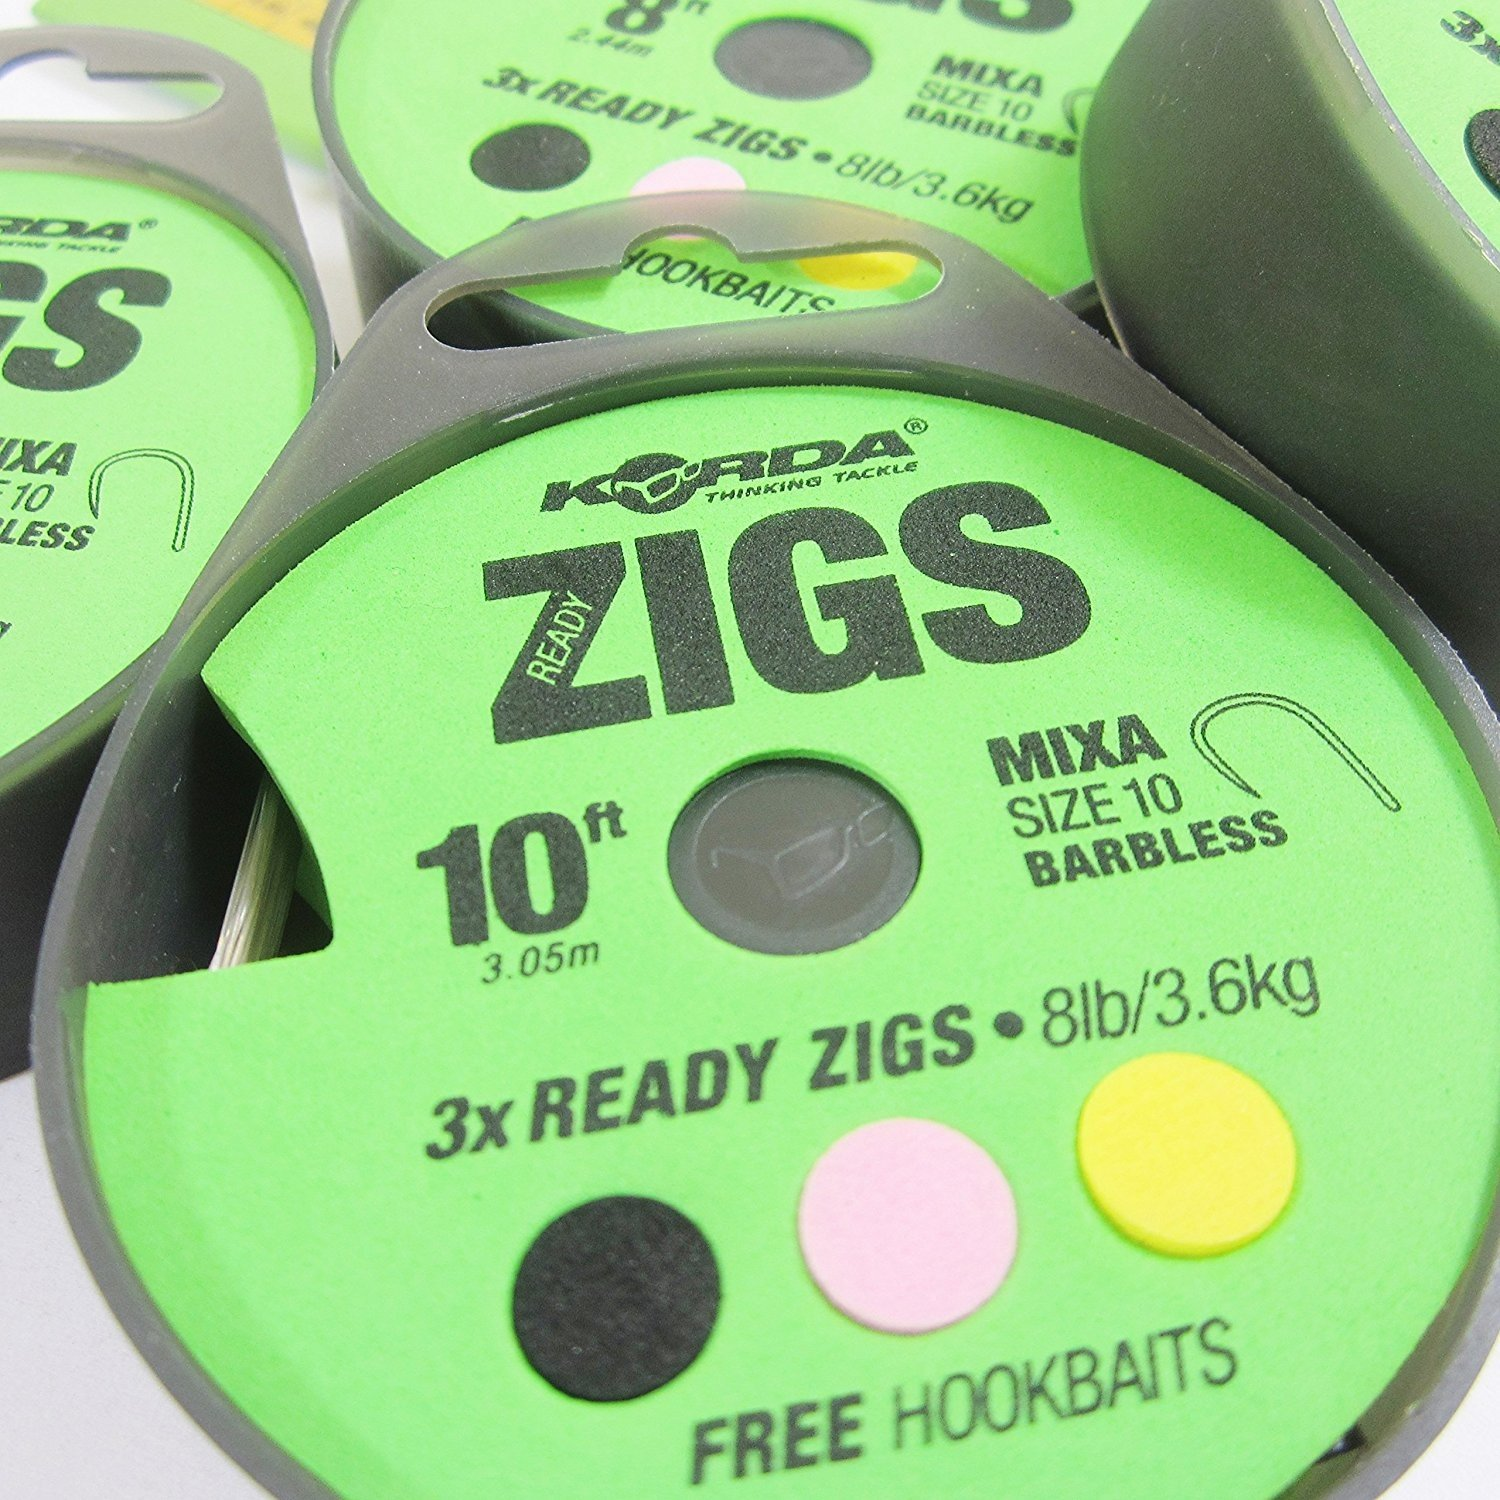 2 Packs//Spools of 3 FTD with free Hookbaits also comes with 10 FTD Hooks to Nylon Available in 6ft, 8ft, 10ft /& 12ft lengths KORDA READY ZIGS with Mixa Size 10 Barbless Fishing Hooks Ready Tied to 8lb//3.6kg Min 6 Rigs